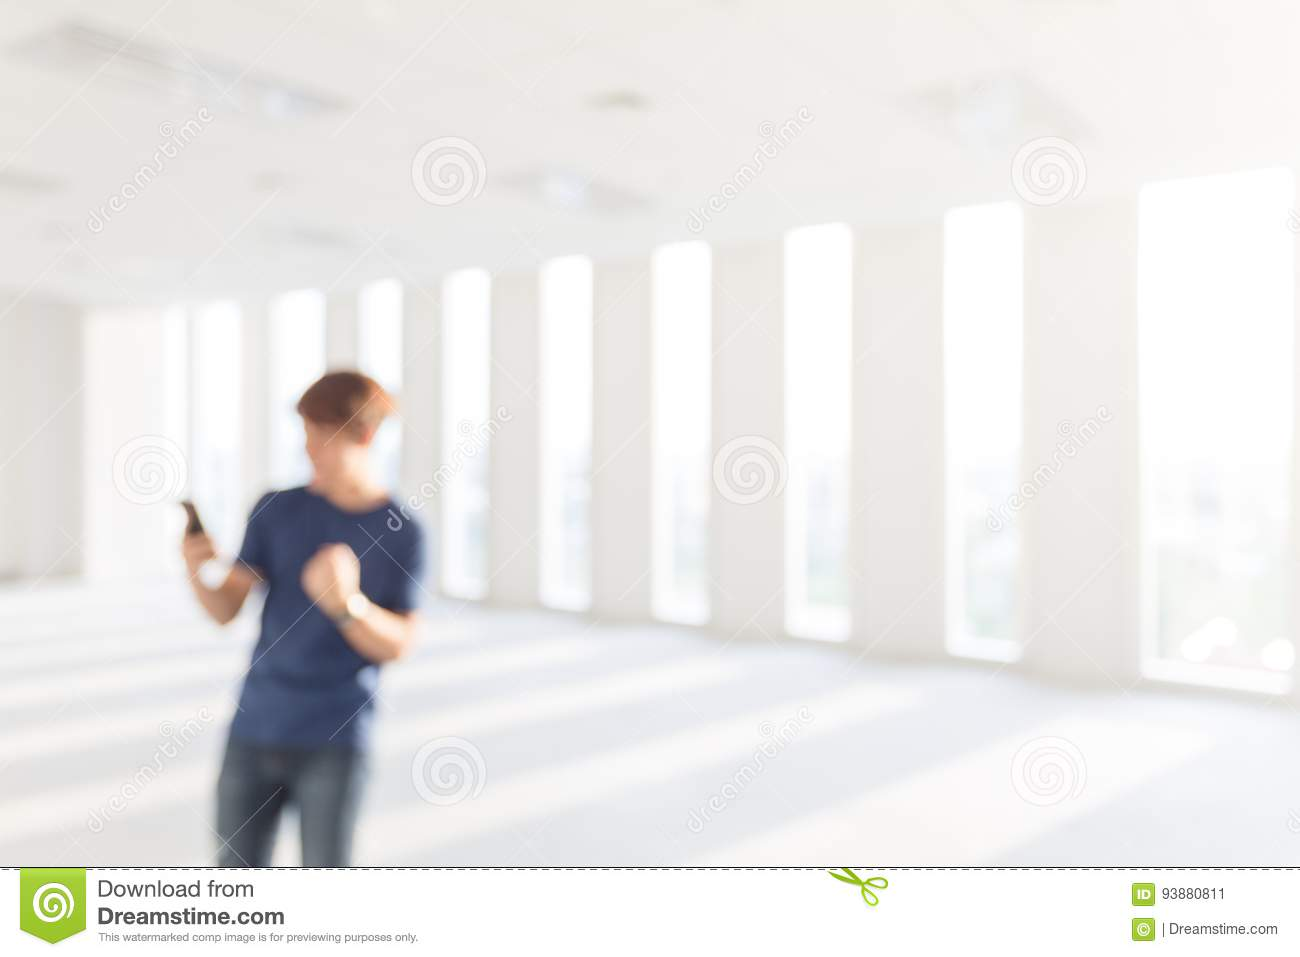 Blurred picture of Happy young man holding smartphone and celebrating his success at e blurred background.